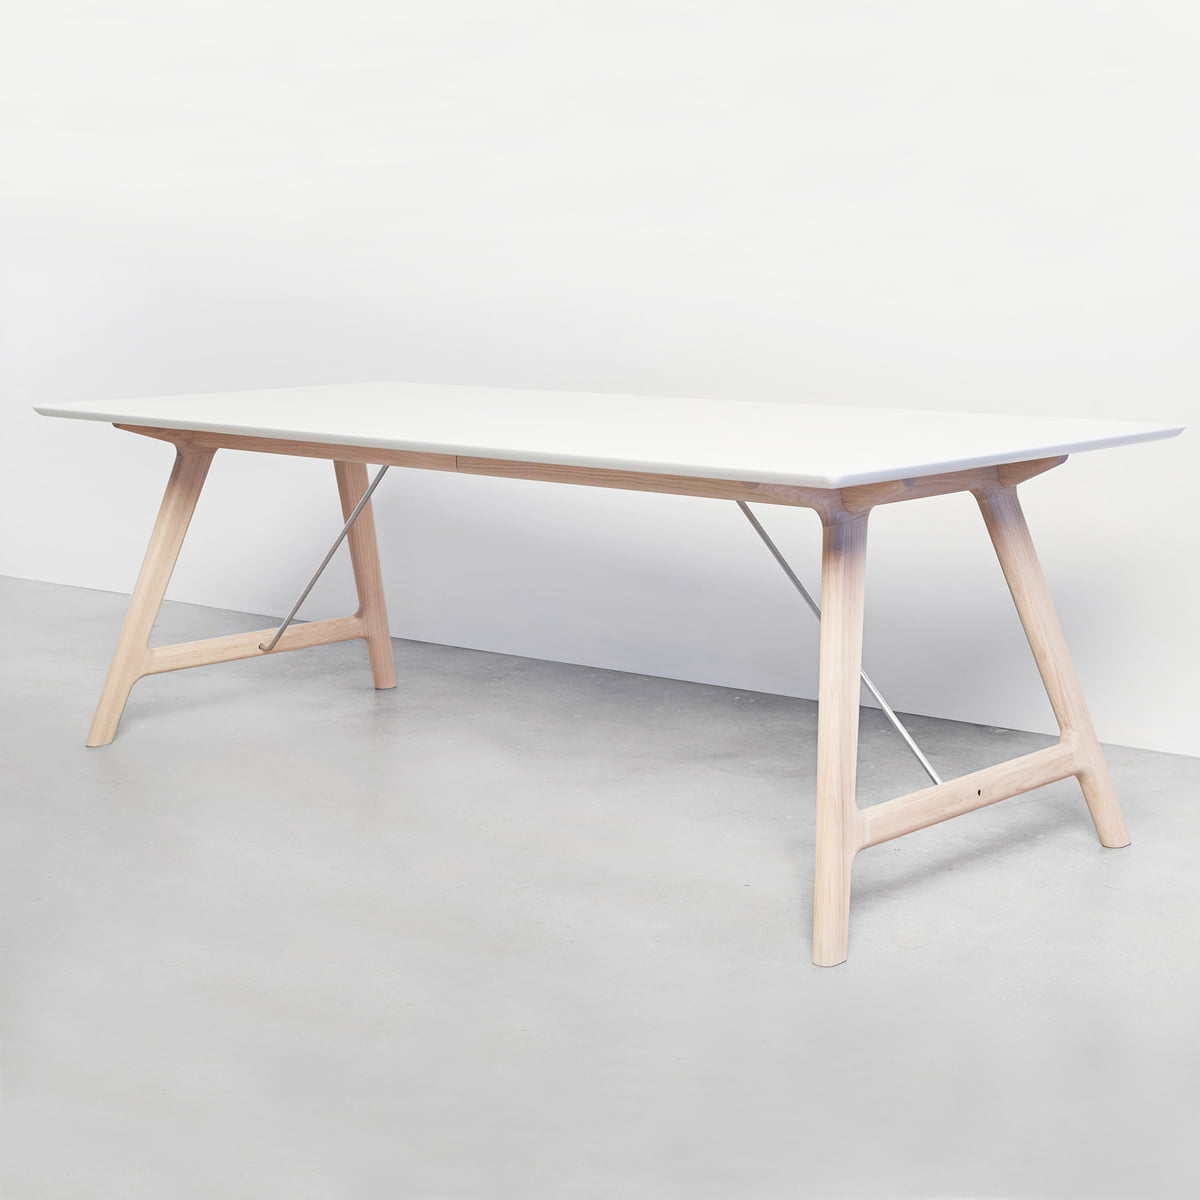 Beau T7 Extending Table 220 Cm By Andersen Furniture